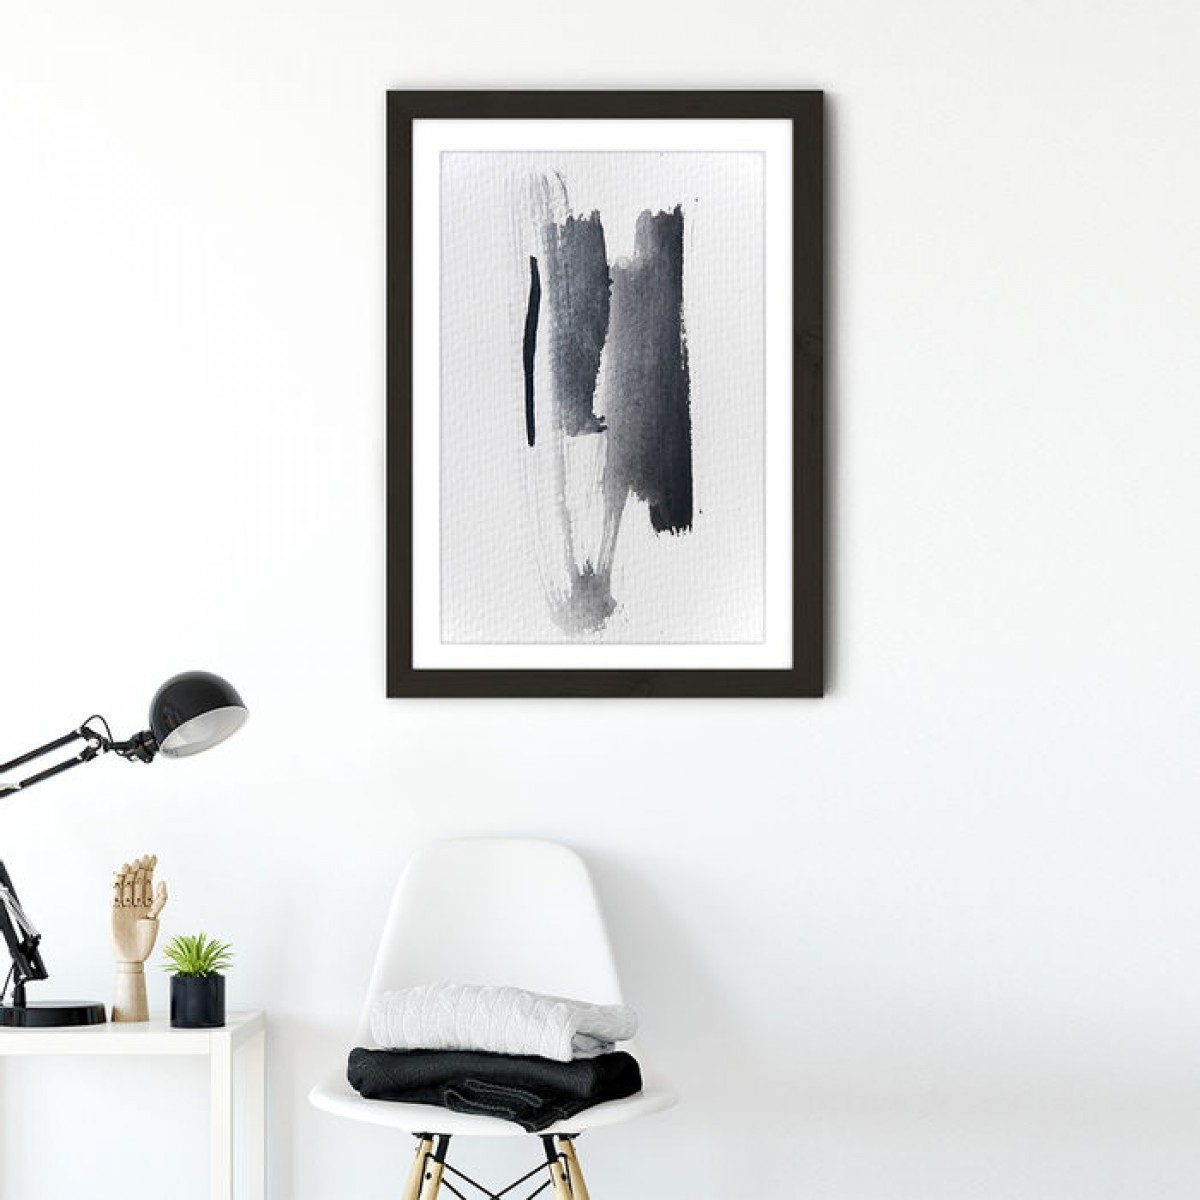 "nahili ARTPRINT / POSTER ""Aquarelle Meets Pencil - Black Strokes"" abstrakte Grafik Kunst - Druck (DIN A1/A3 & 50x70cm)"